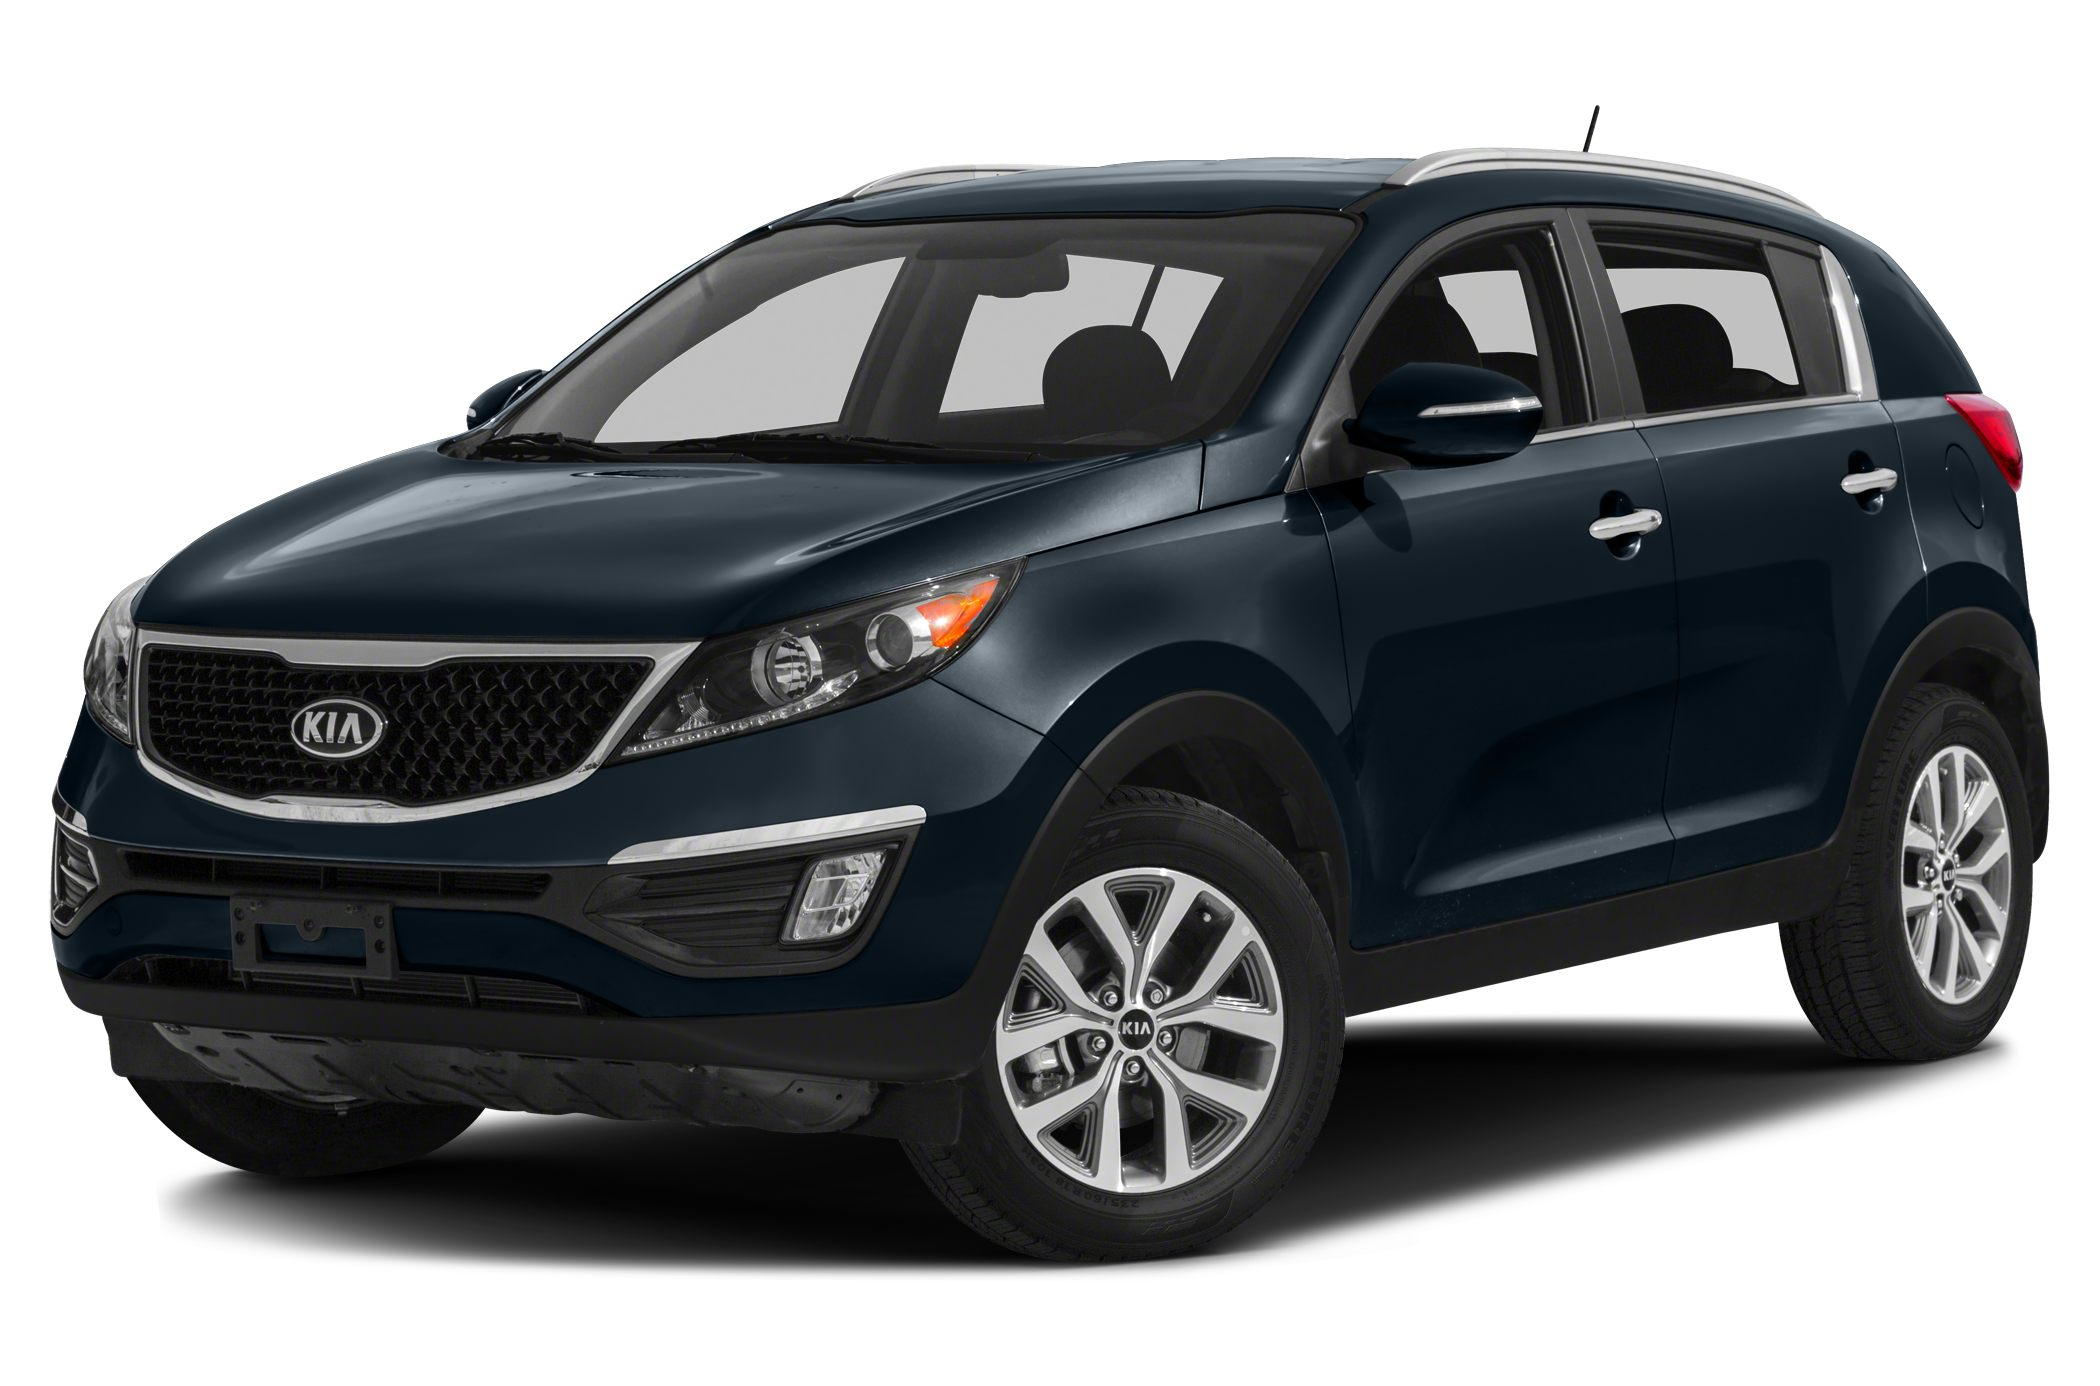 2016 Kia Sportage LX AWD Power Windows and locks Cruise Control Intermittent Wipers Satellite